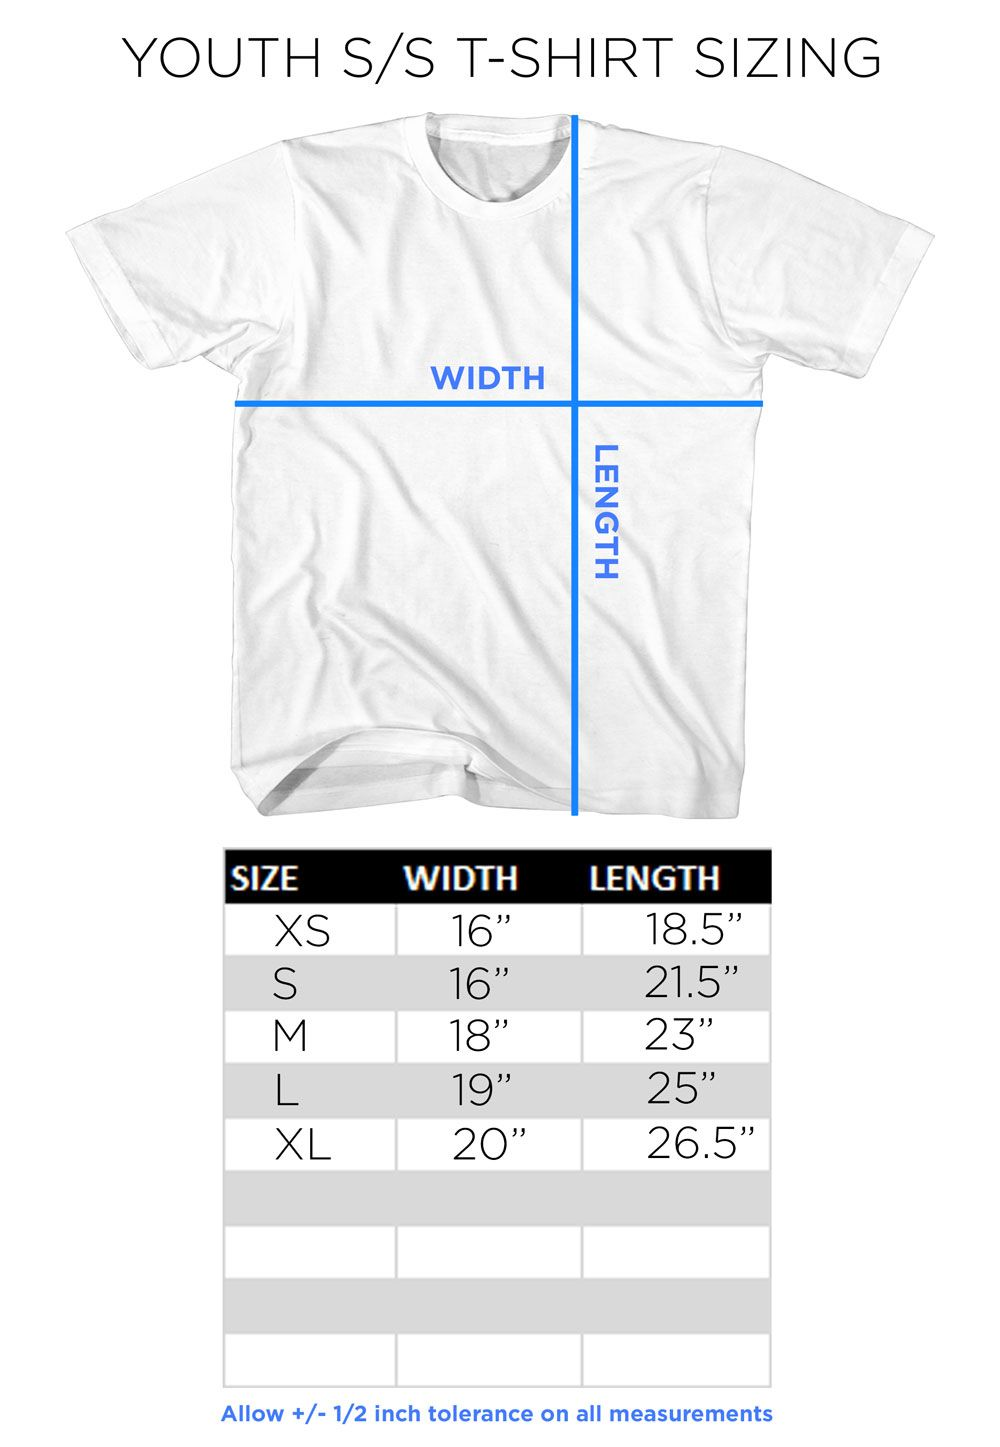 ac-youth-size-chart-2.jpg